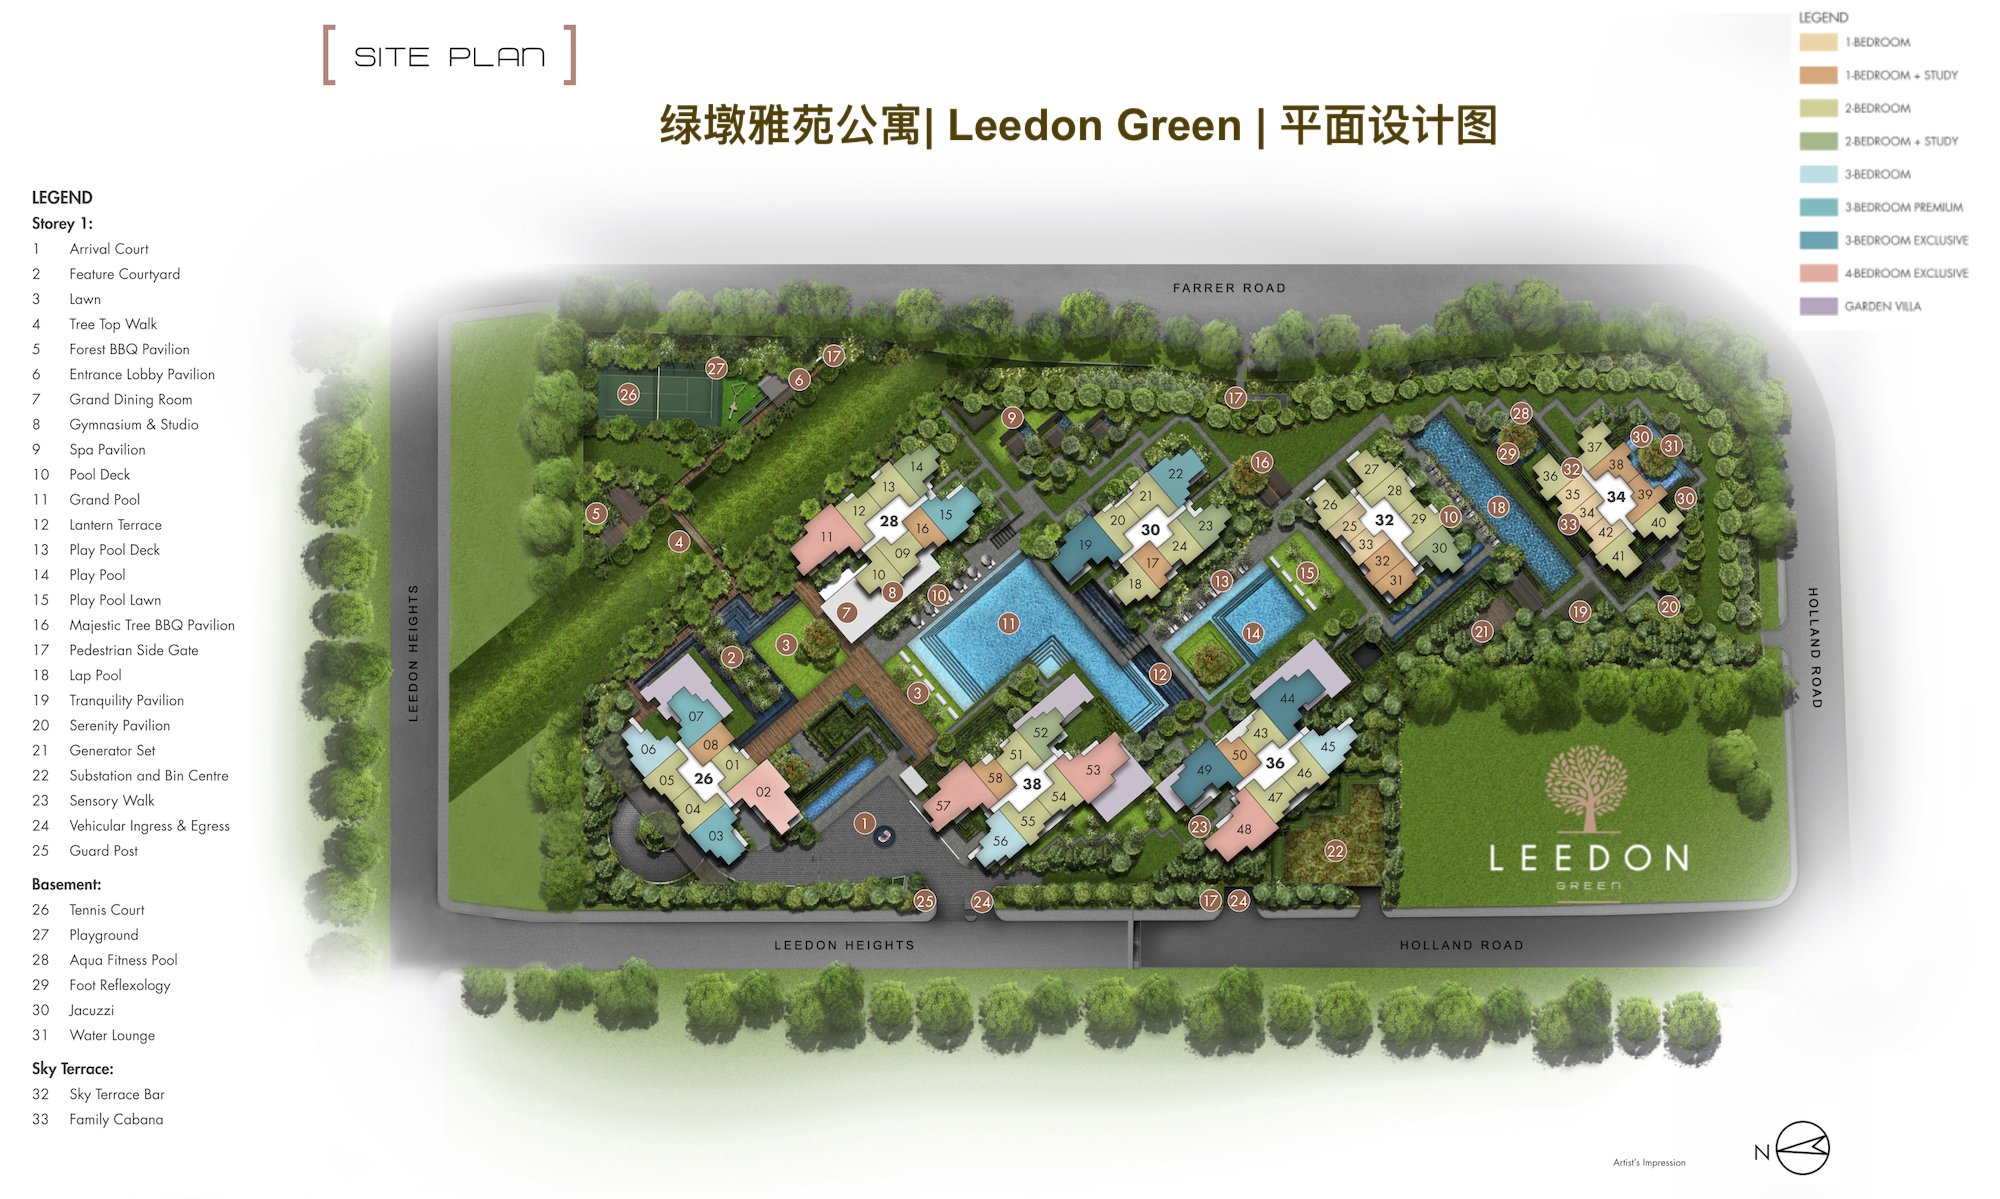 Leedon Green site plan with unit mix